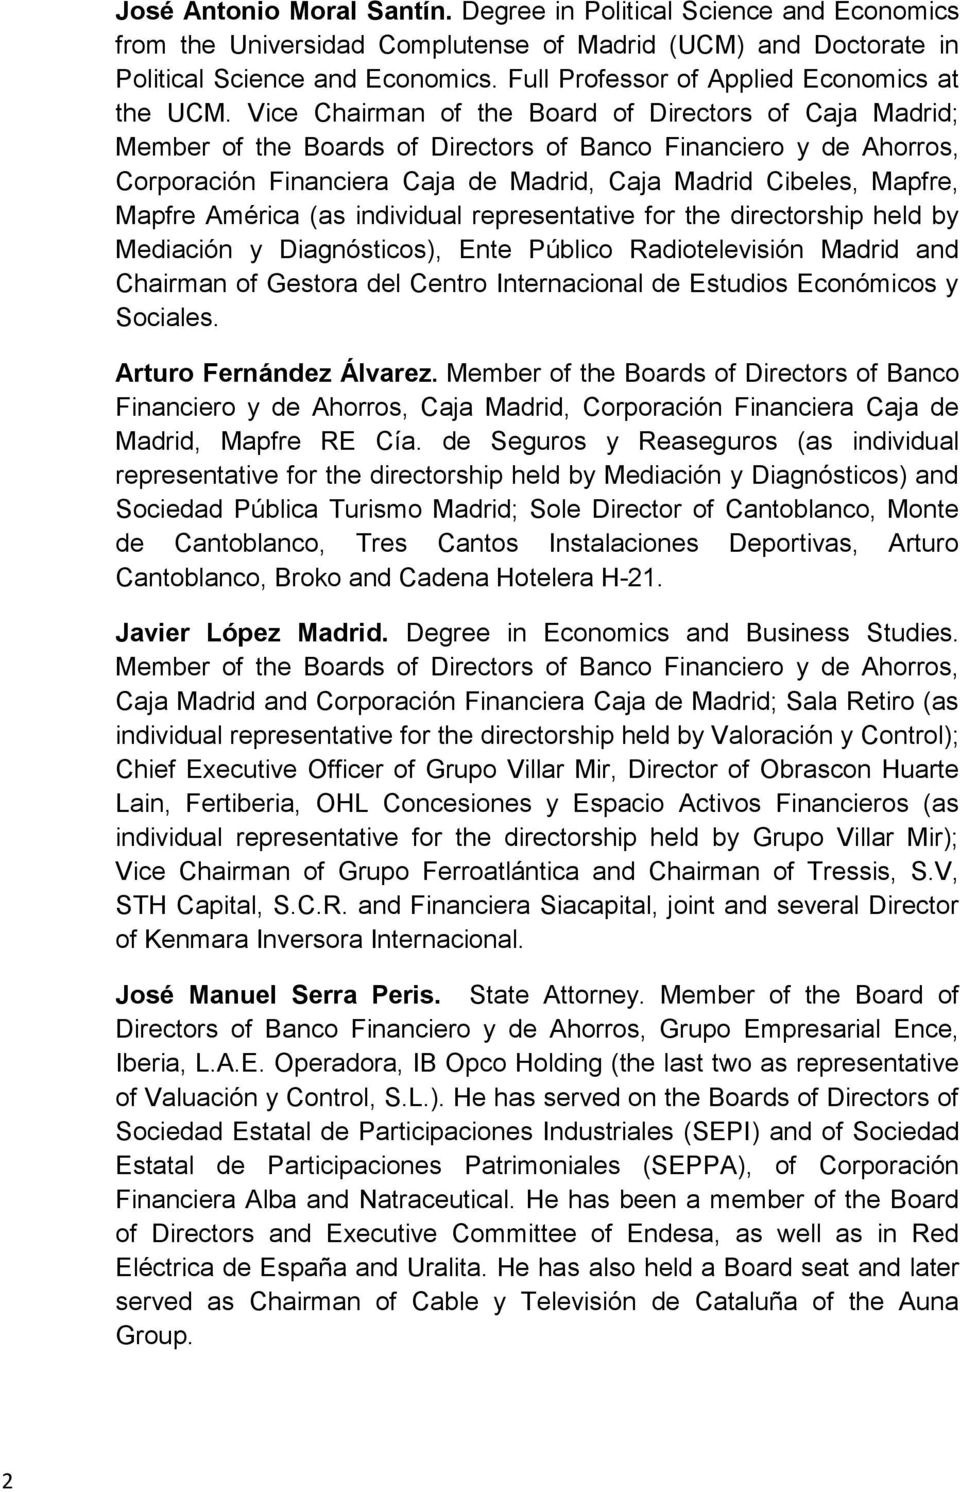 Vice Chairman of the Board of Directors of Caja Madrid; Member of the Boards of Directors of Banco Financiero y de Ahorros, Corporación Financiera Caja de Madrid, Caja Madrid Cibeles, Mapfre, Mapfre